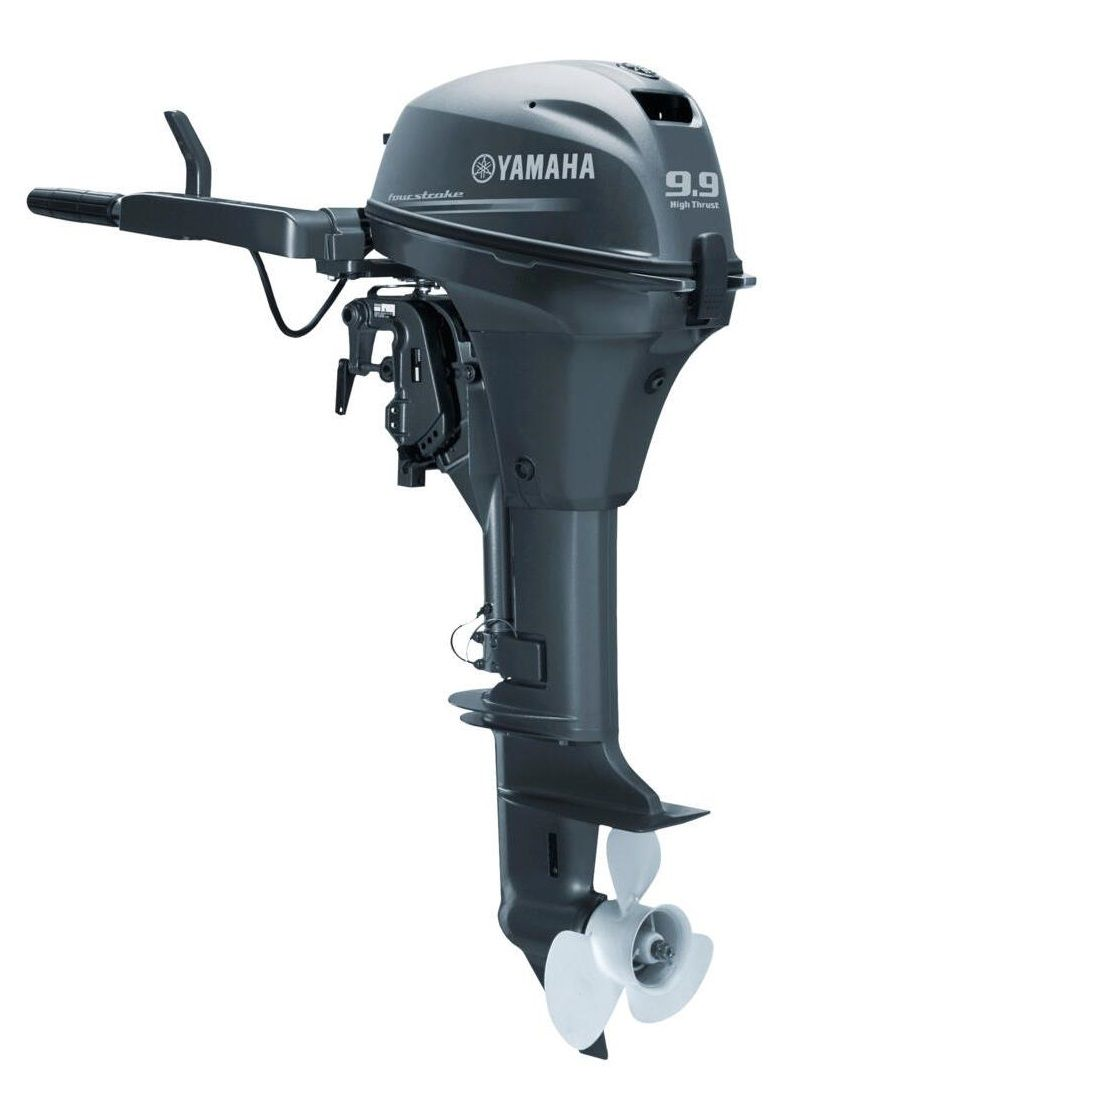 Yamaha High Thrust Outboards 9.9 ~ 60 HP